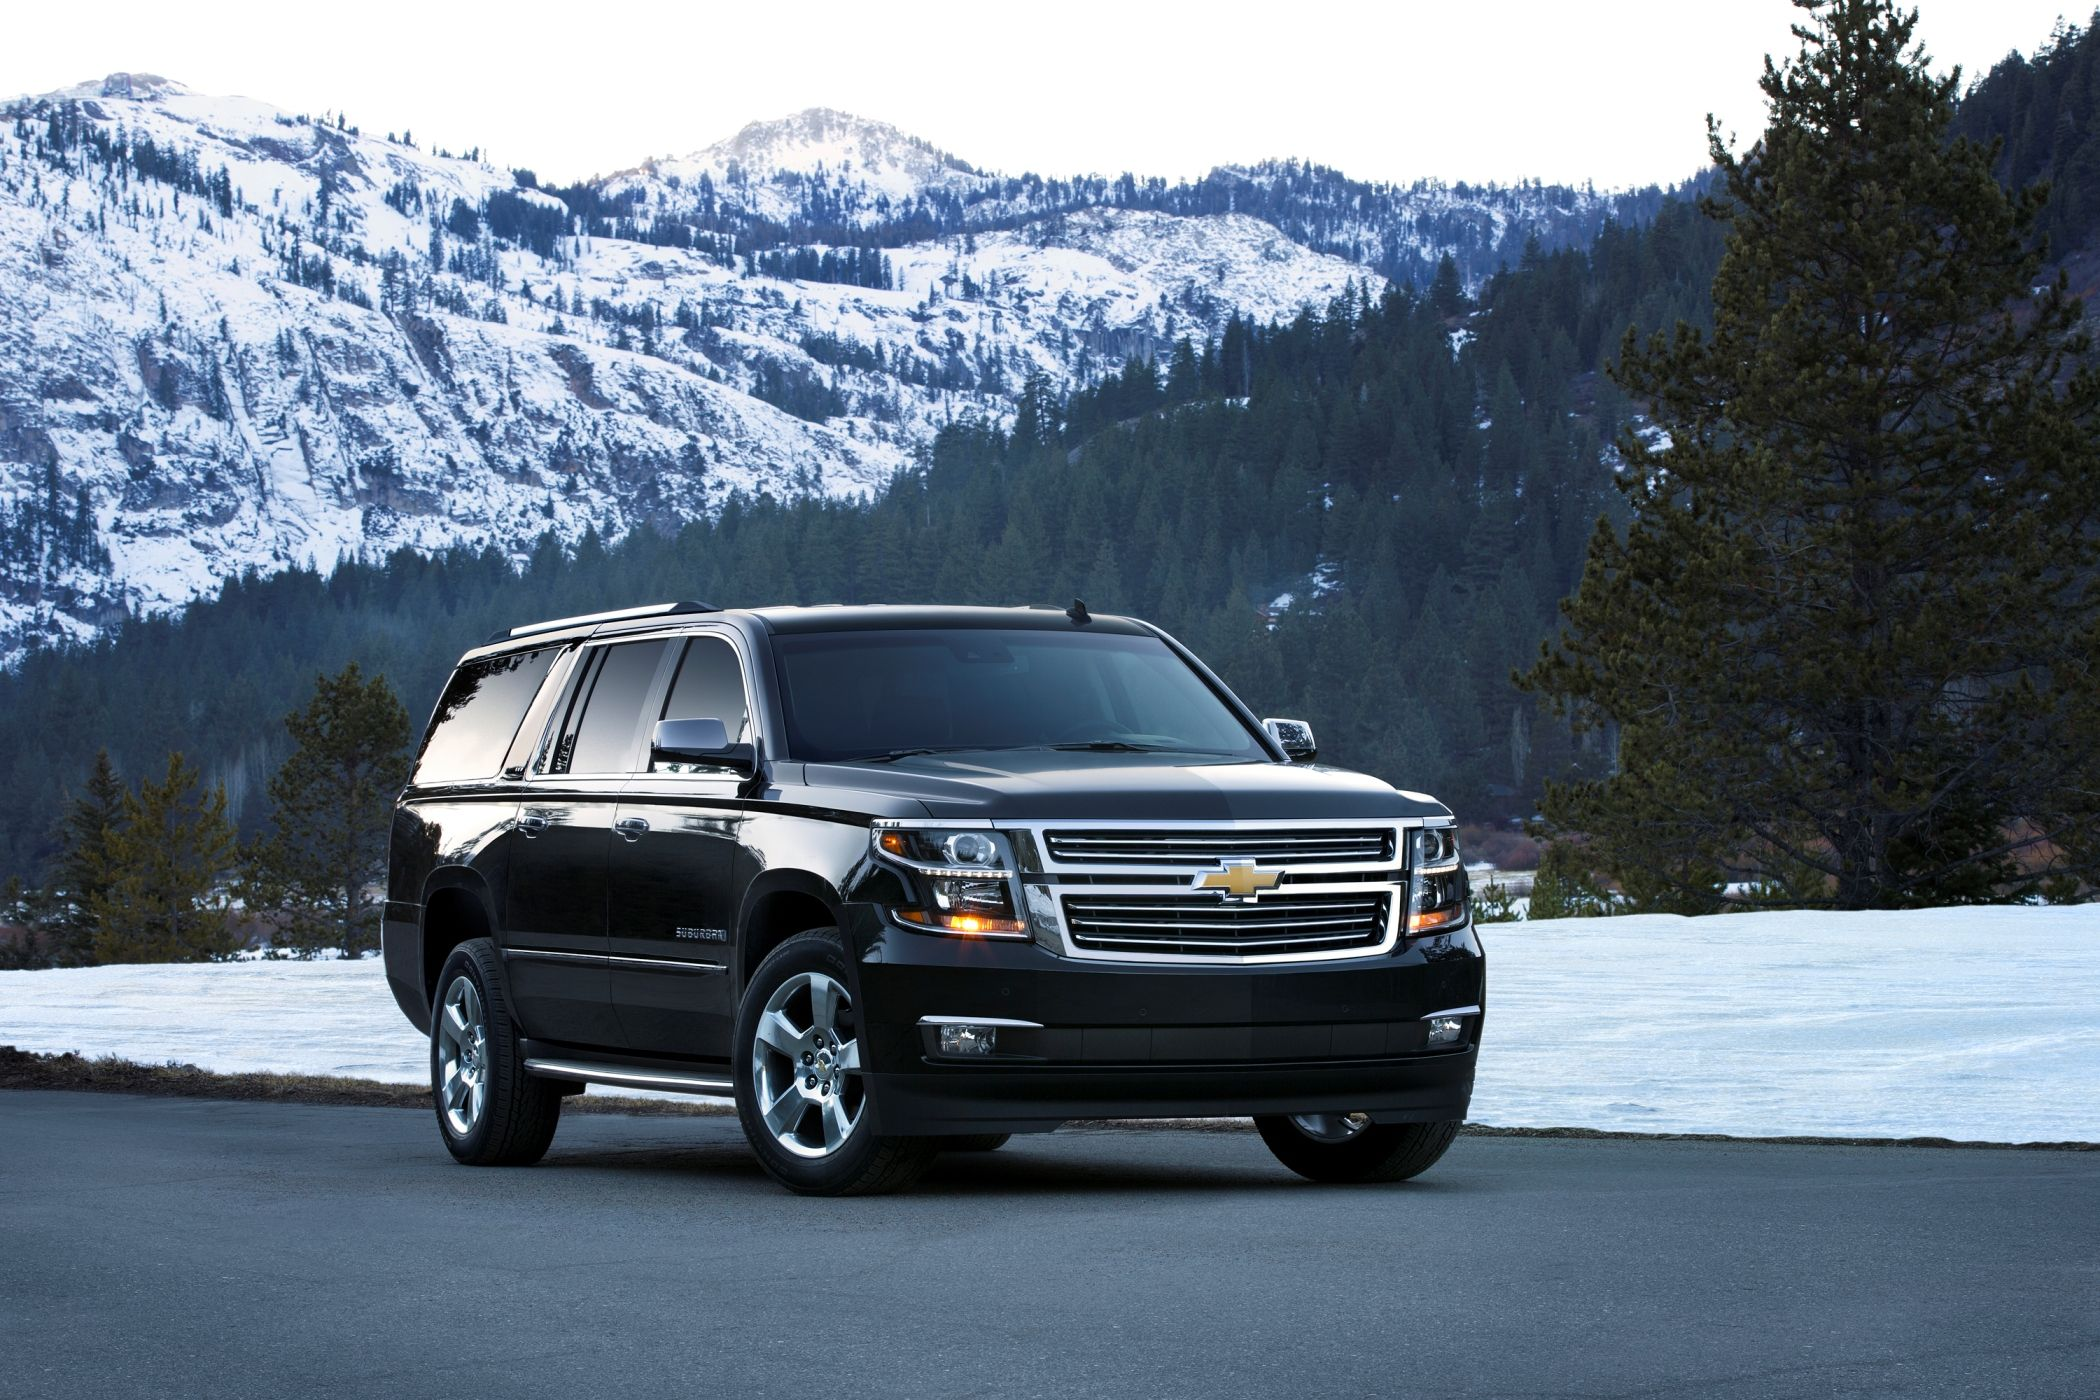 2015 Chevrolet Tahoe And Suburban Clean Powder Landing 30 New Photos Official Pricing From 46 00 Chevrolet Suburban Chevy Suburban Chevy Tahoe